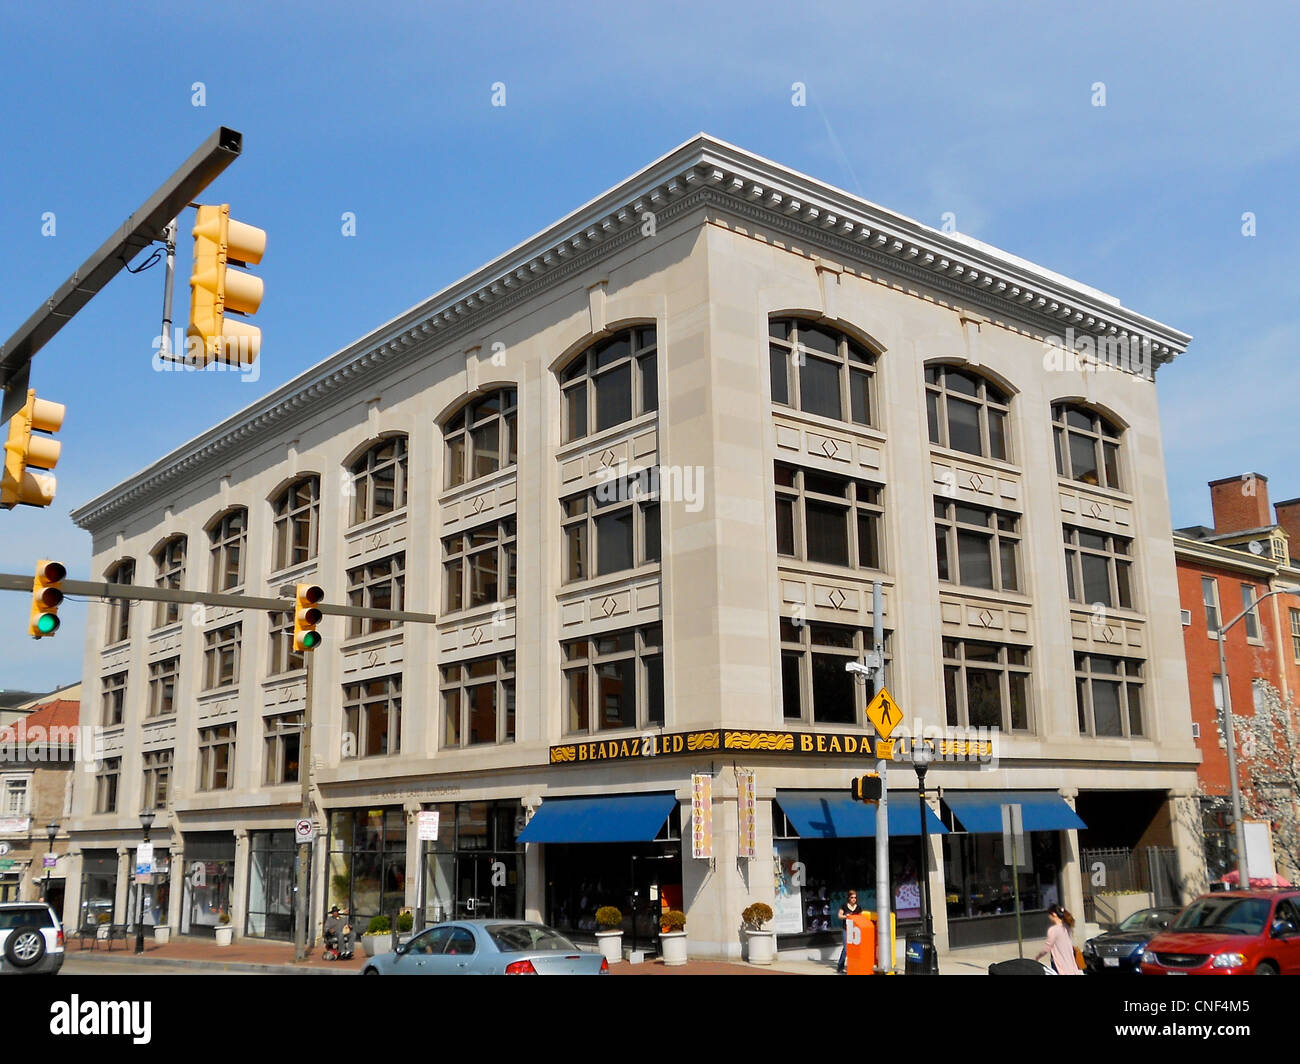 Benson Building on the NRHP since March 26, 1980. At 4 E. Franklin St. in central Baltimore, Maryland - Stock Image